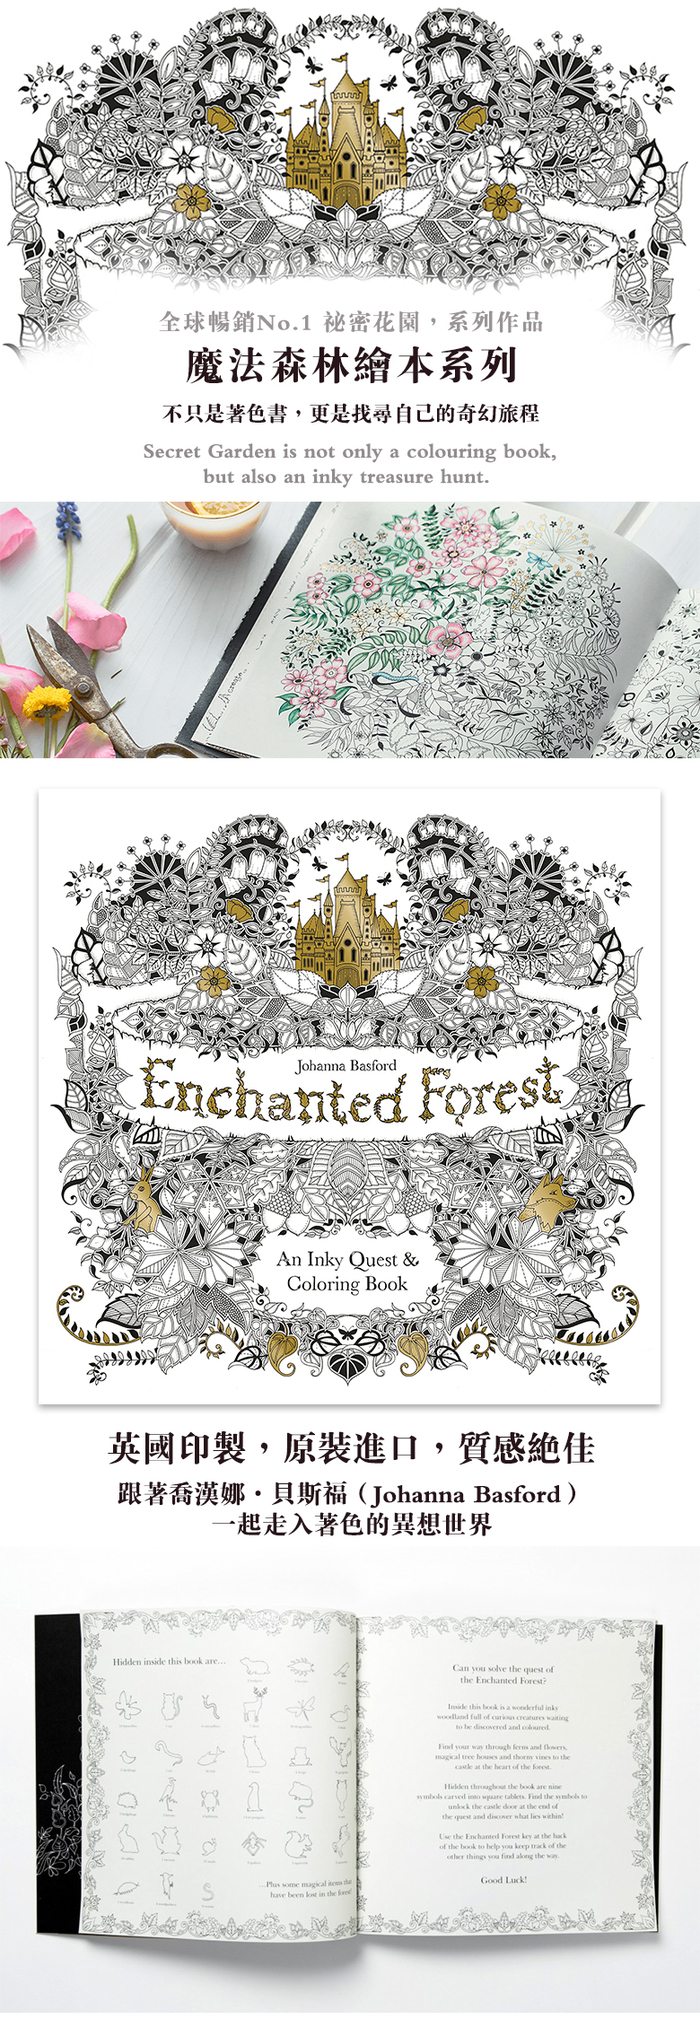 Laurence King|Enchanted Forest 魔法森林 - 奇幻之旅手繪本 (方形)